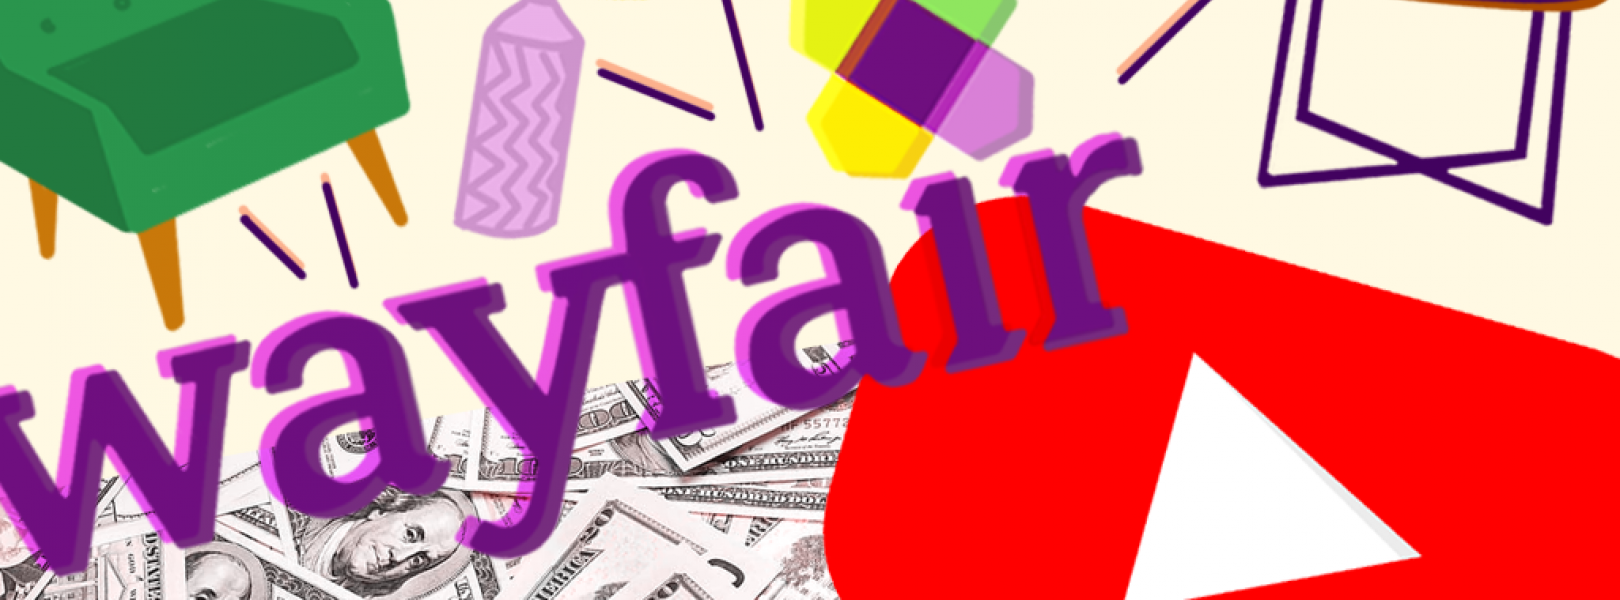 Wayfair YouTube image